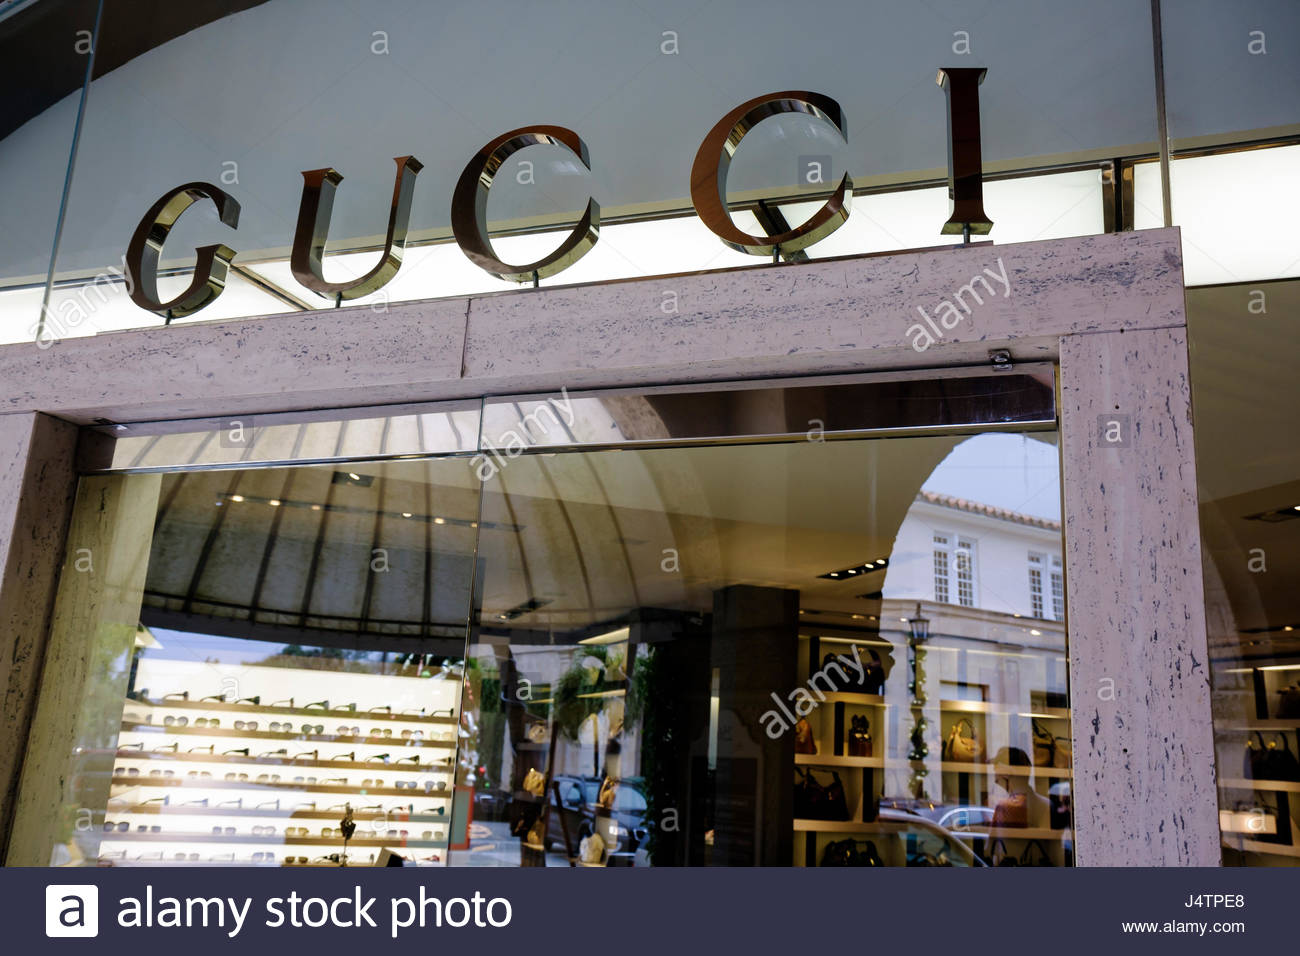 3e6f54d9d Is There A Gucci Store In Orlando Florida   The Art of Mike Mignola